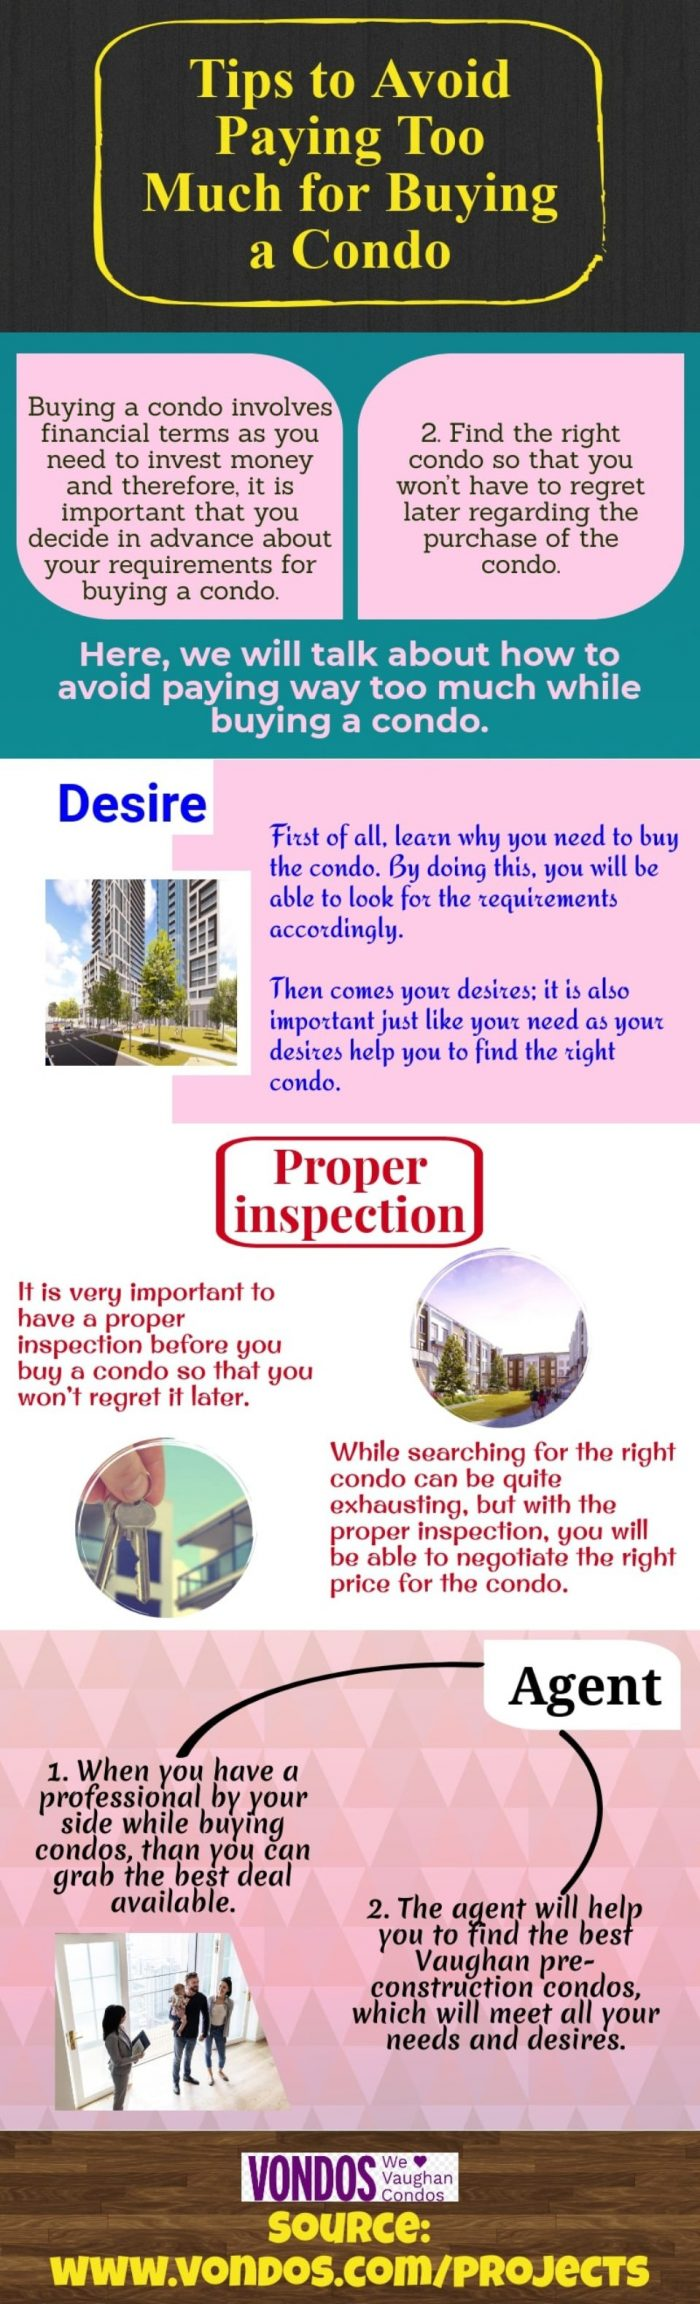 Important Information To Know About pre-construction condos